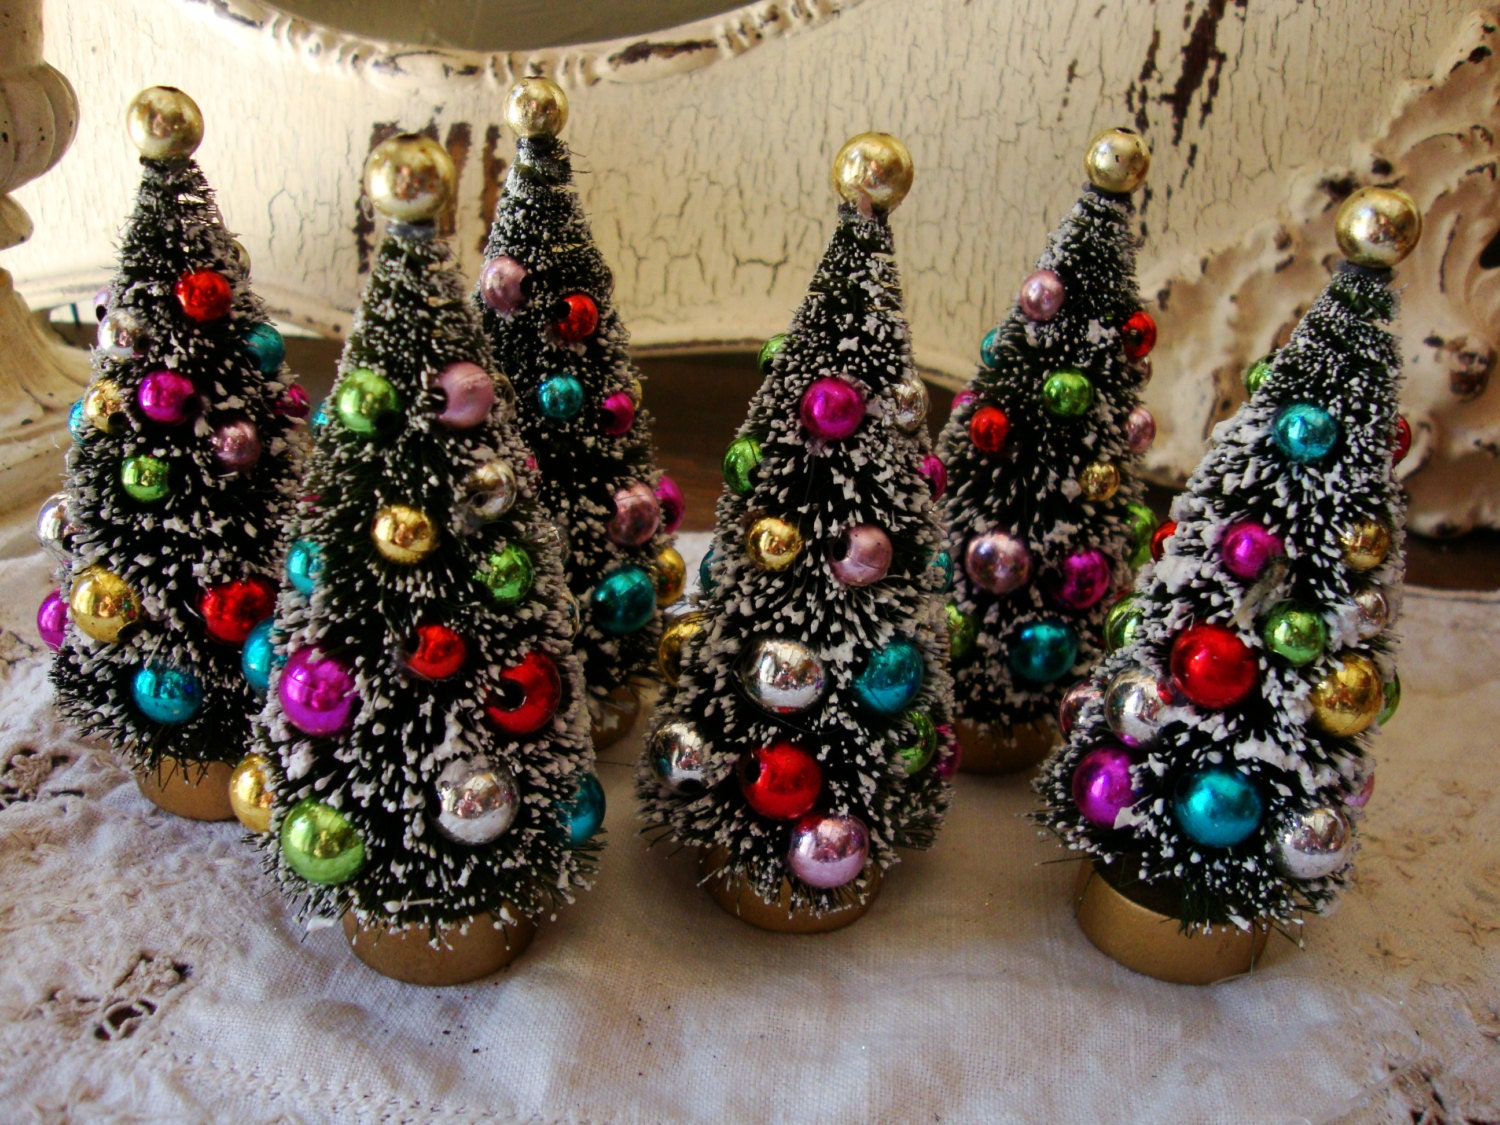 bottle brush trees 41  2 flocked christmas trees with cottage chic home decor cottage chic wall decor